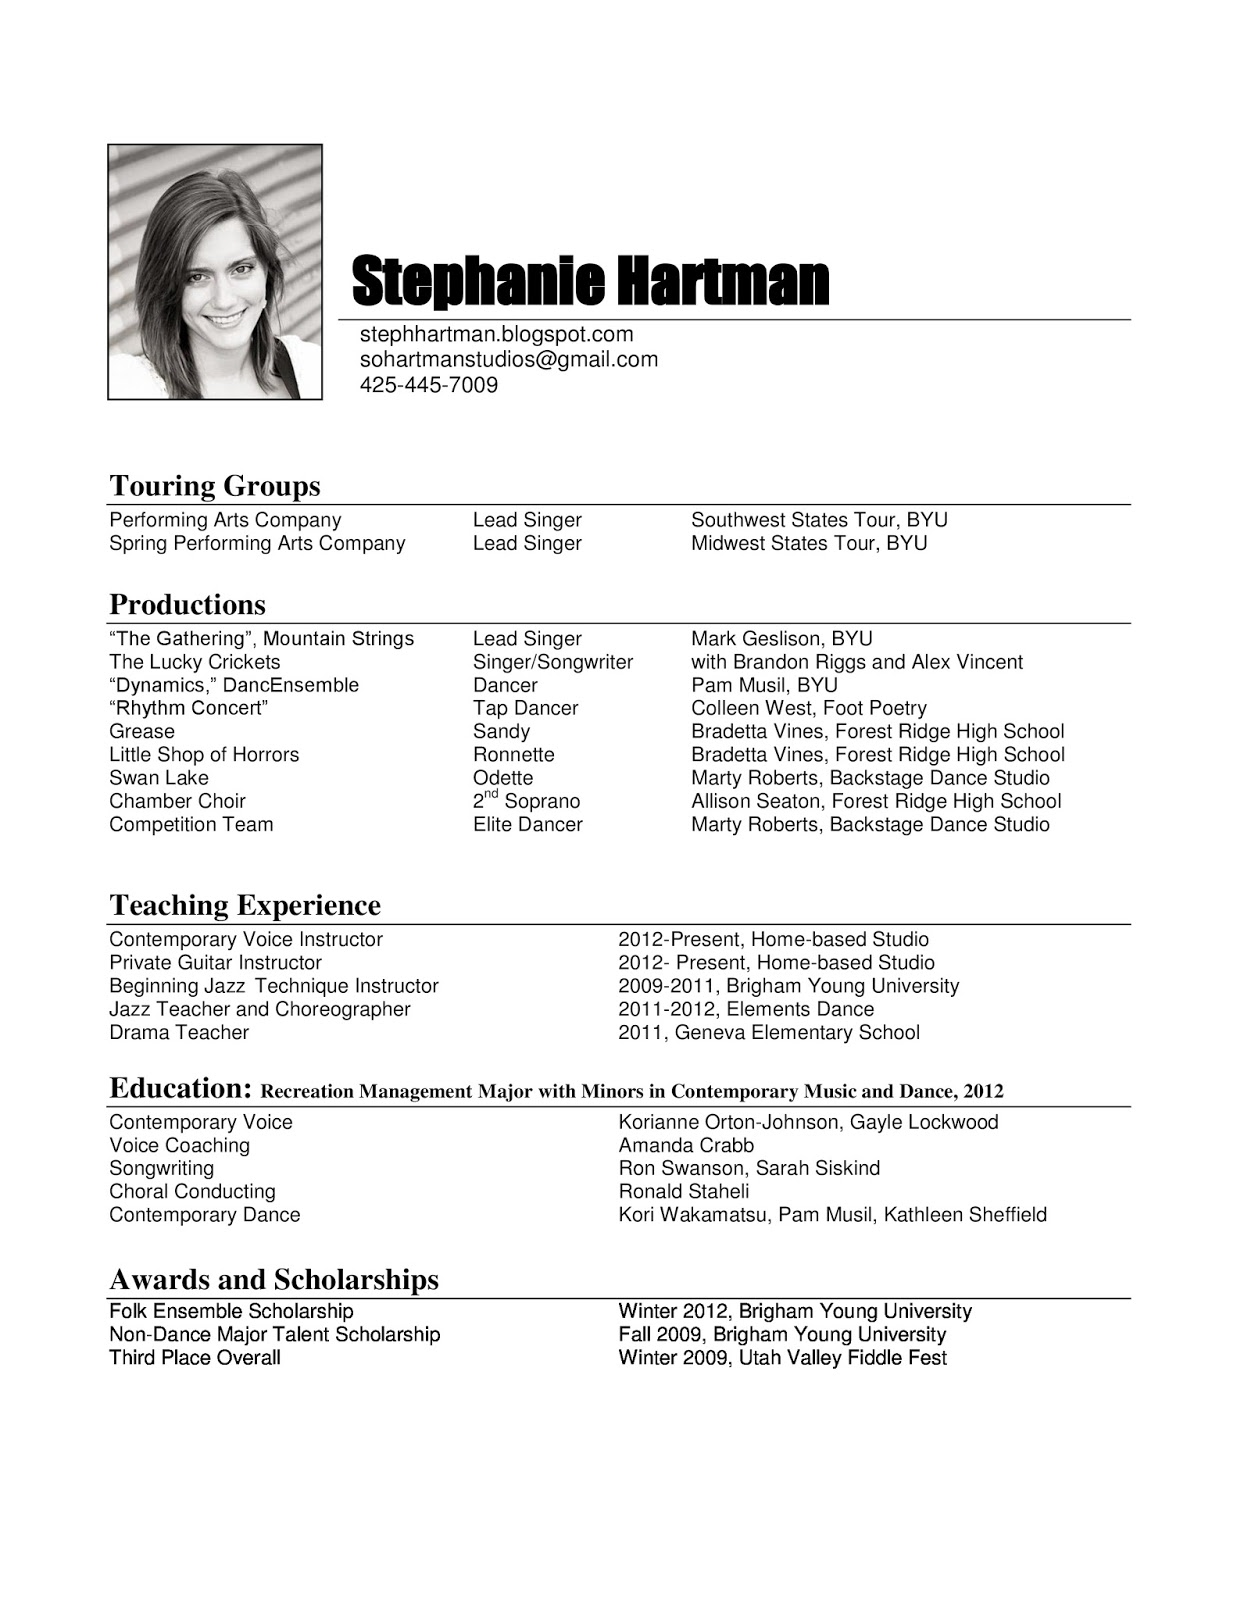 How To Make A Resume For Musician